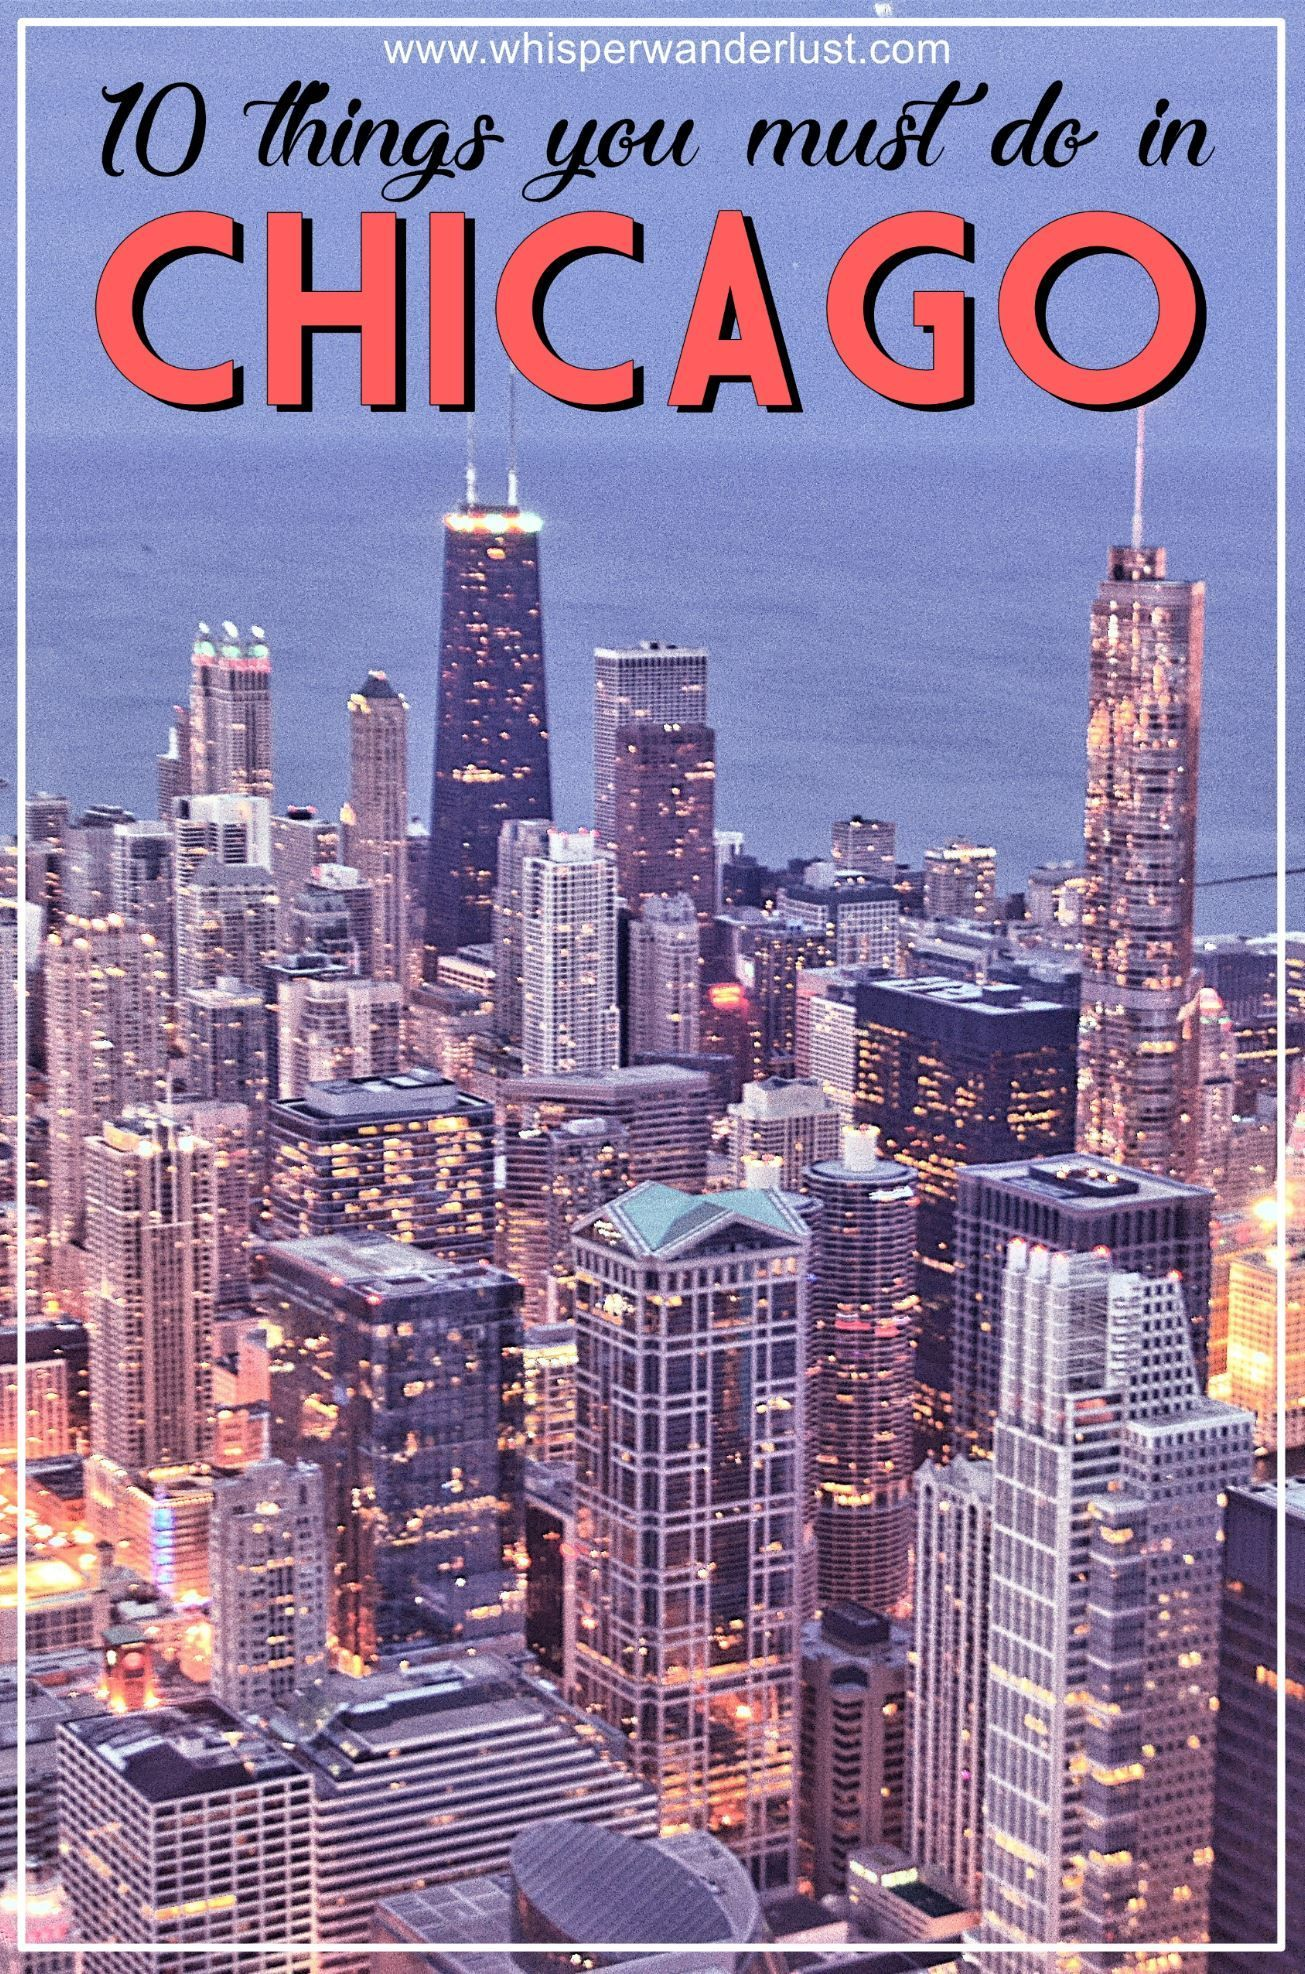 top 10 things to do in chicago freedom years travel chicago rh pinterest com things to do in chicago as a family things to do in chicago on a rainy day